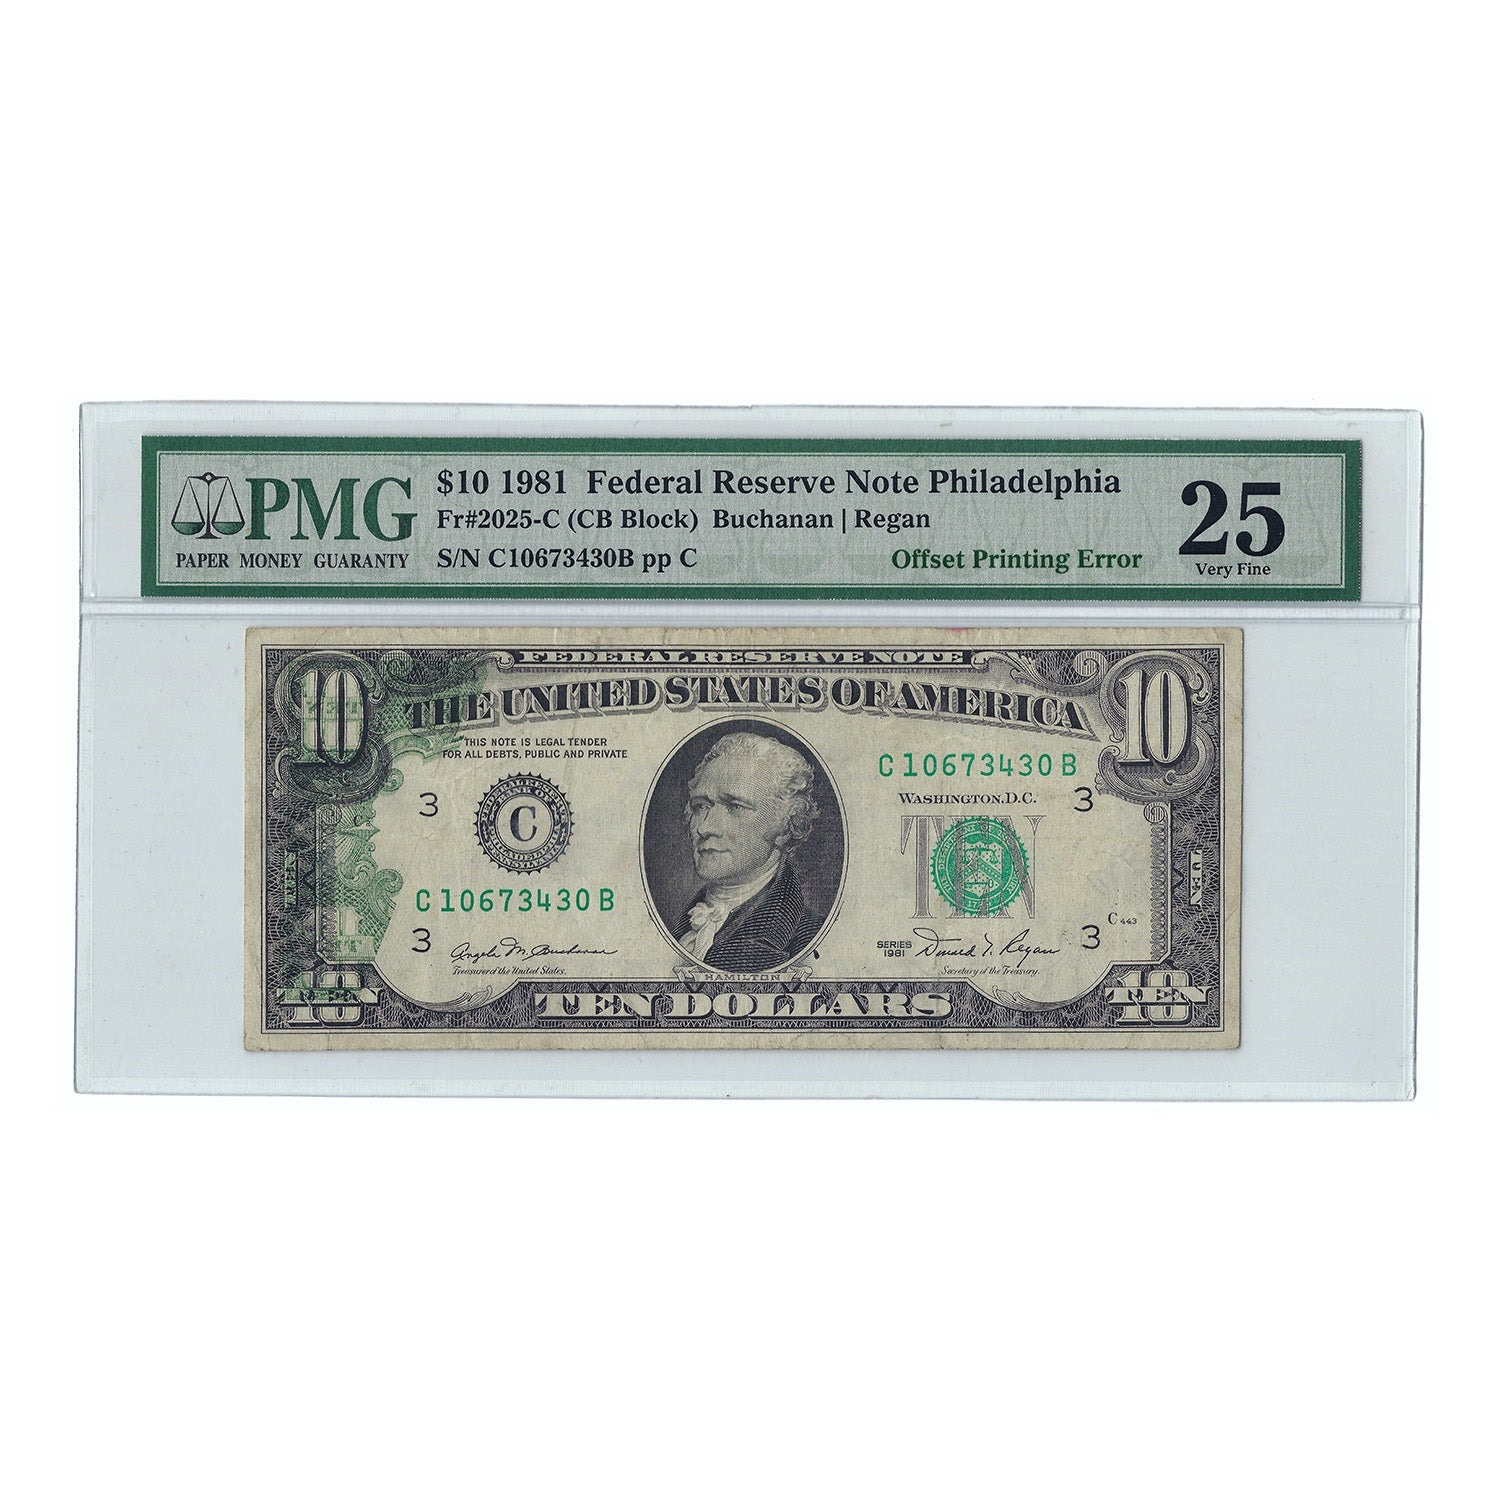 1981 $10 Federal Reserve Note, Buchanan-Regan, FR2025C, PMG 25 Very Fine